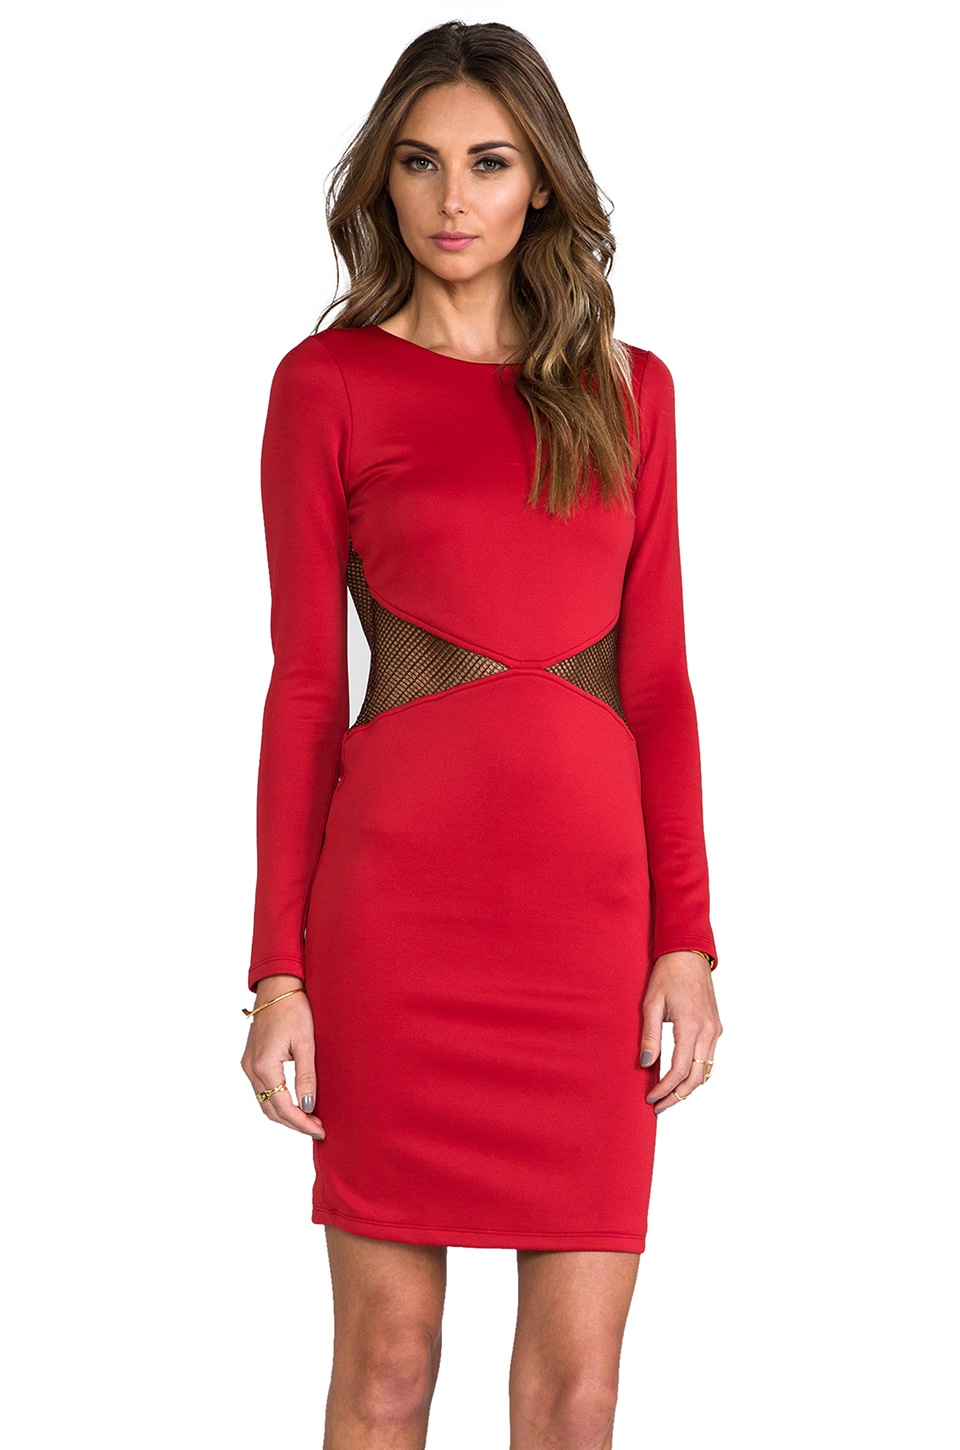 Boulee Lawrence Dress in Red